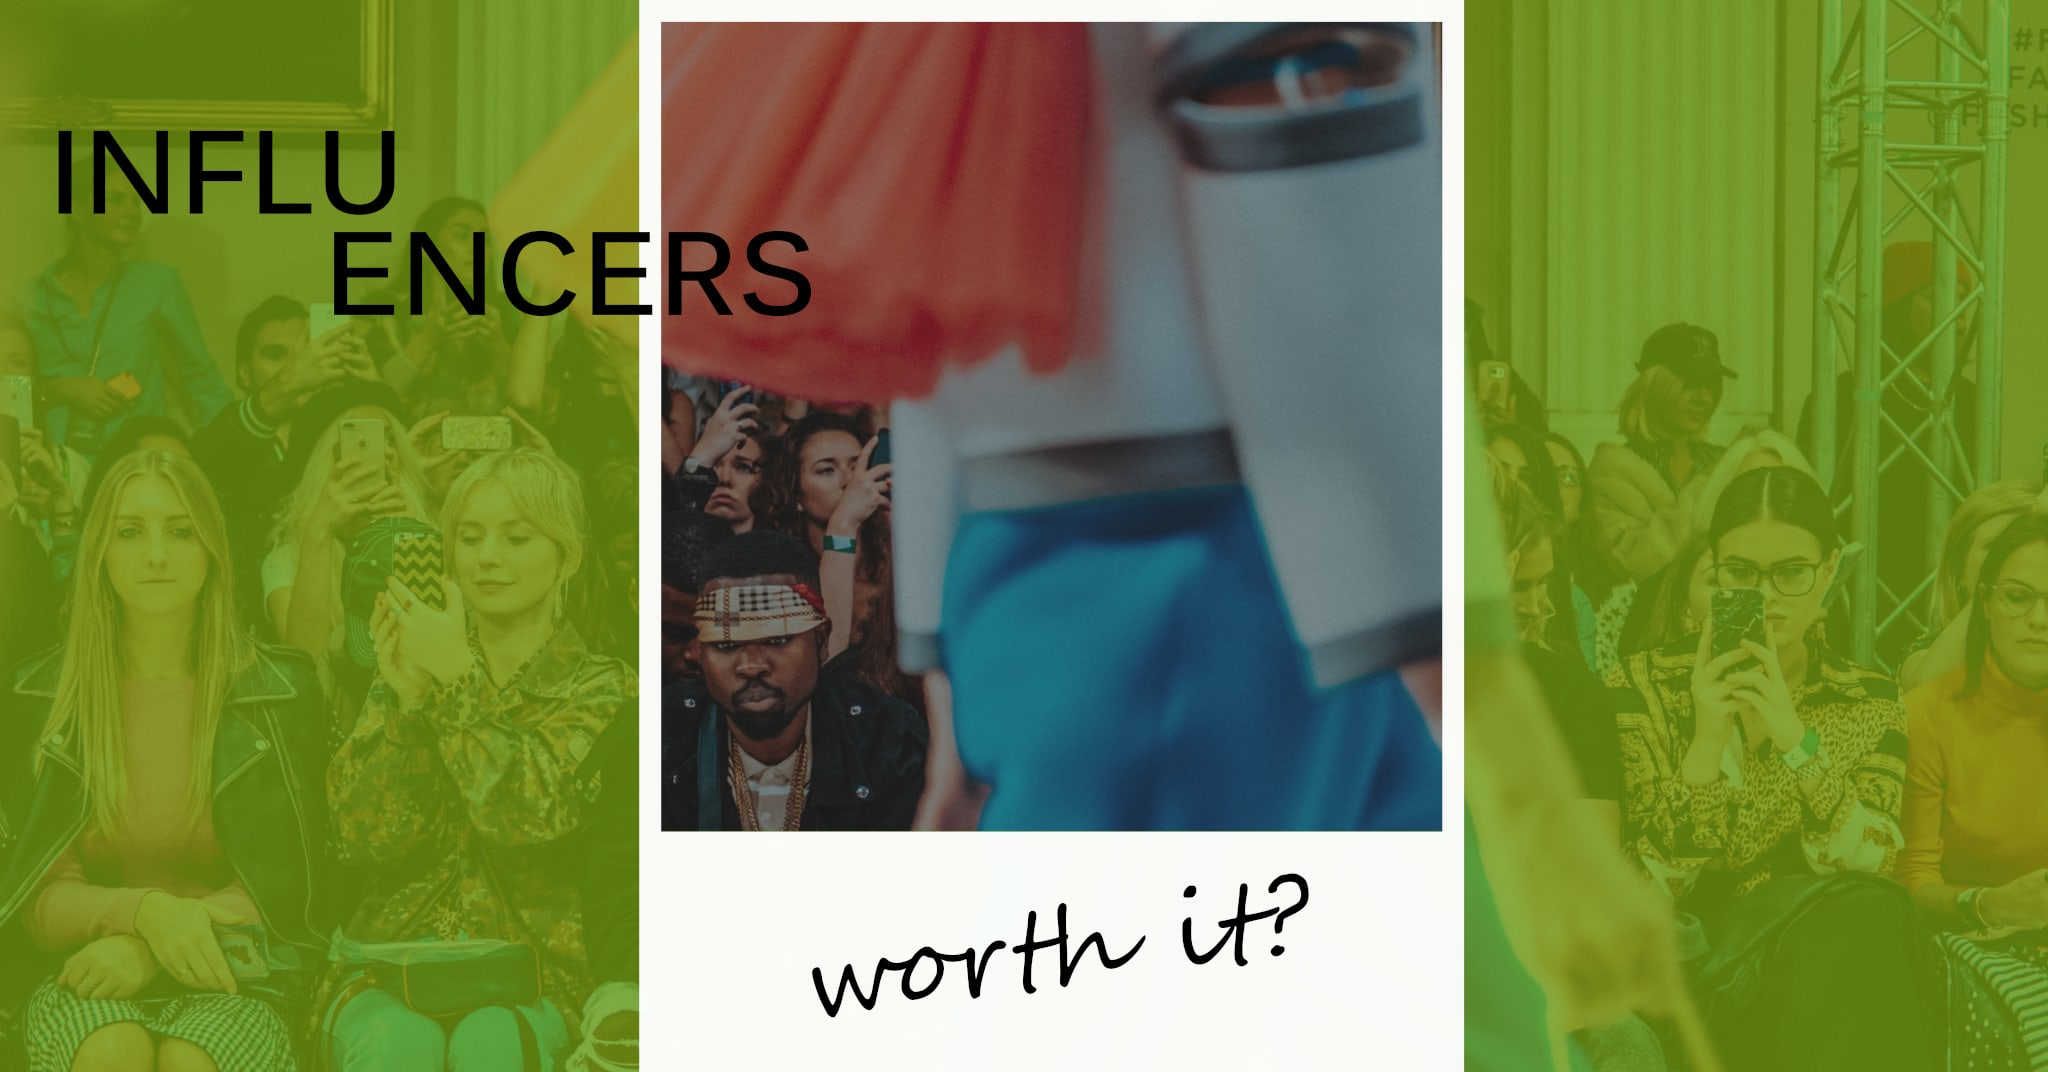 Influencers: Just a Trend or Real Value?